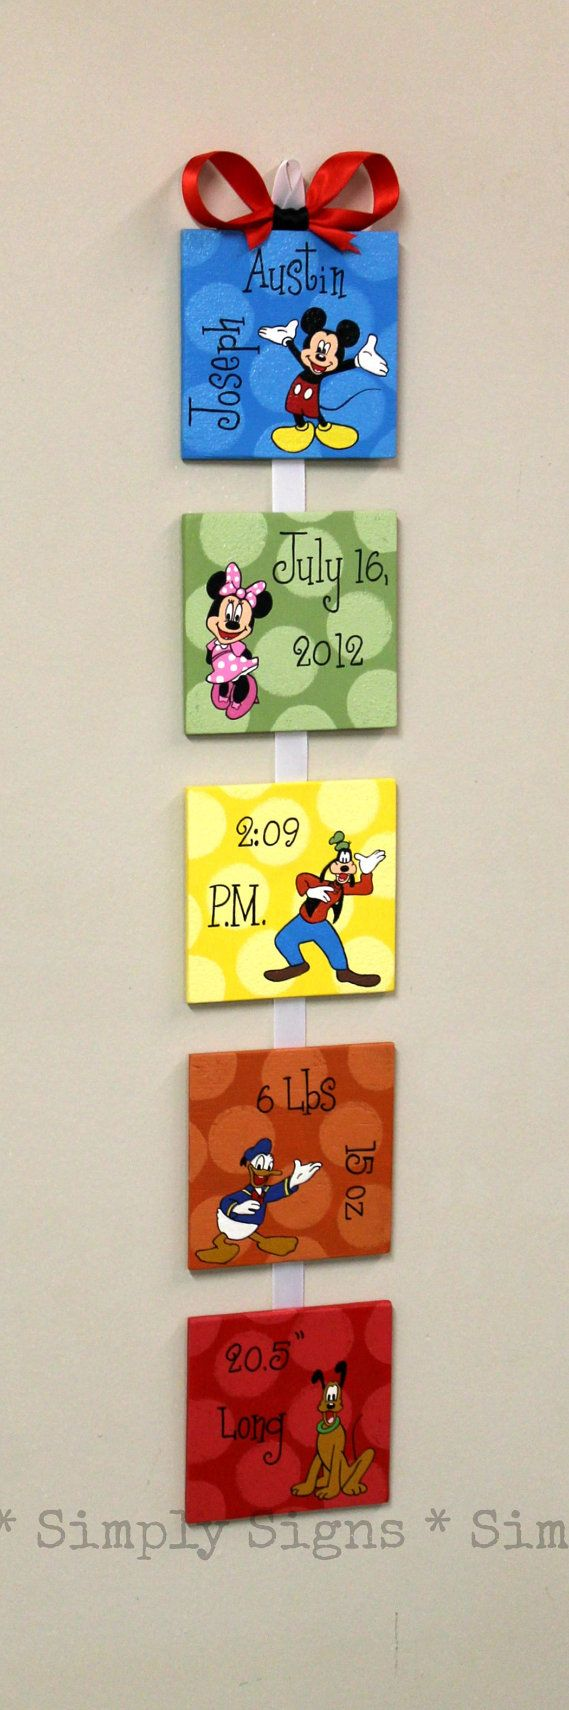 25 best minnie mouse room decor ideas on pinterest minnie mouse mickey and friends custom birth announcement for baby nursery or child s bedroom mickey mouse clubhouse